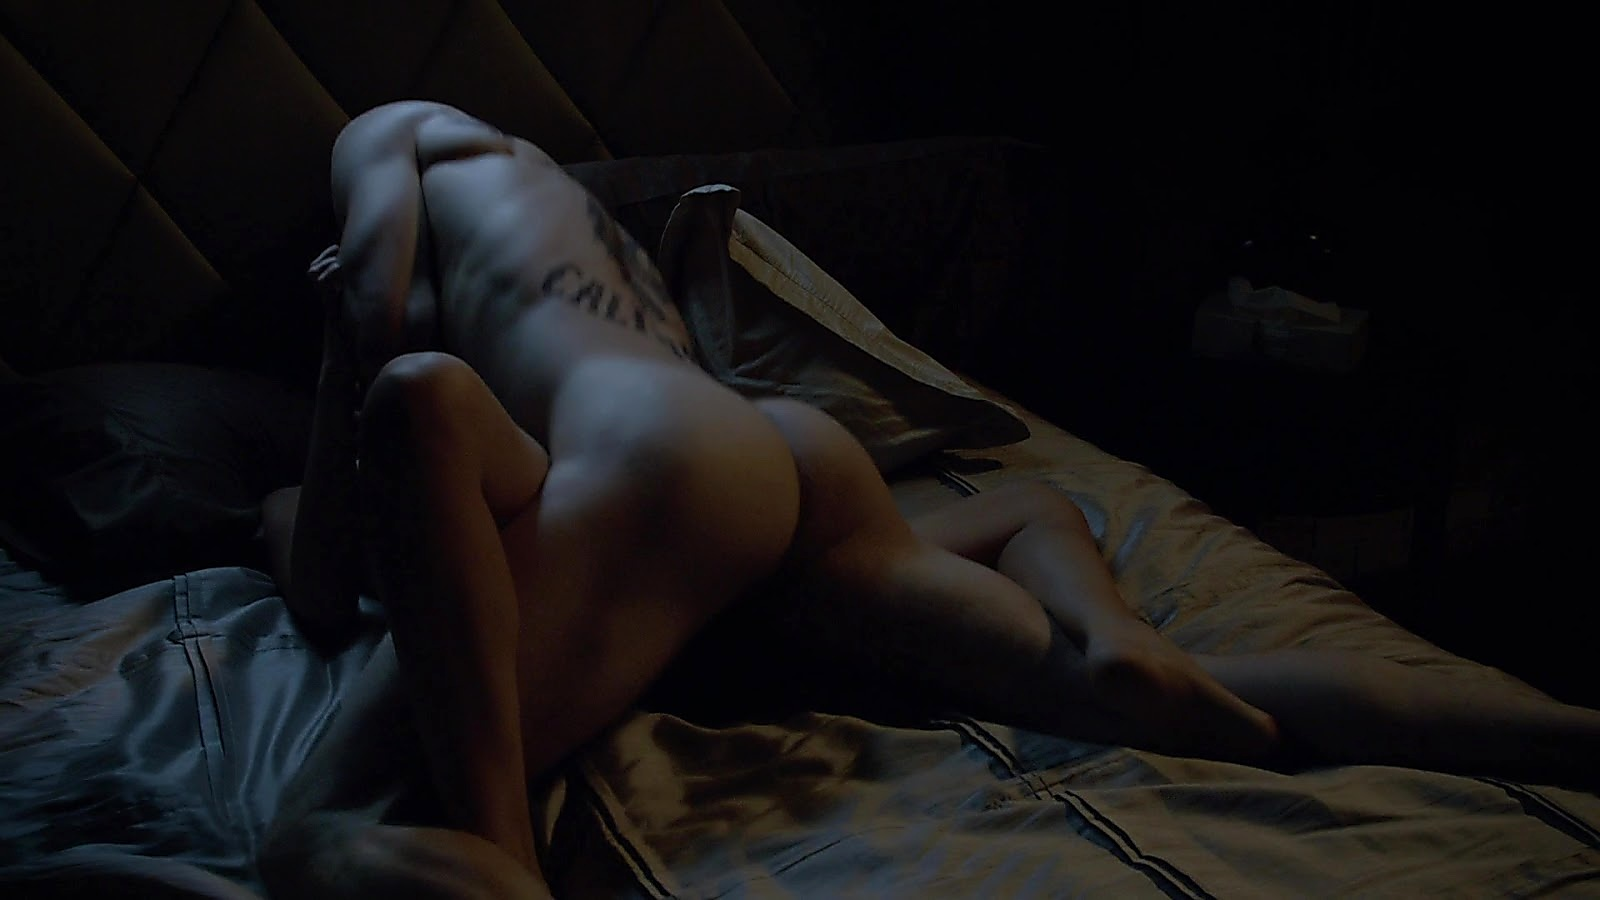 Charlie Hunnam sexy shirtless scene May 14, 2020, 5am